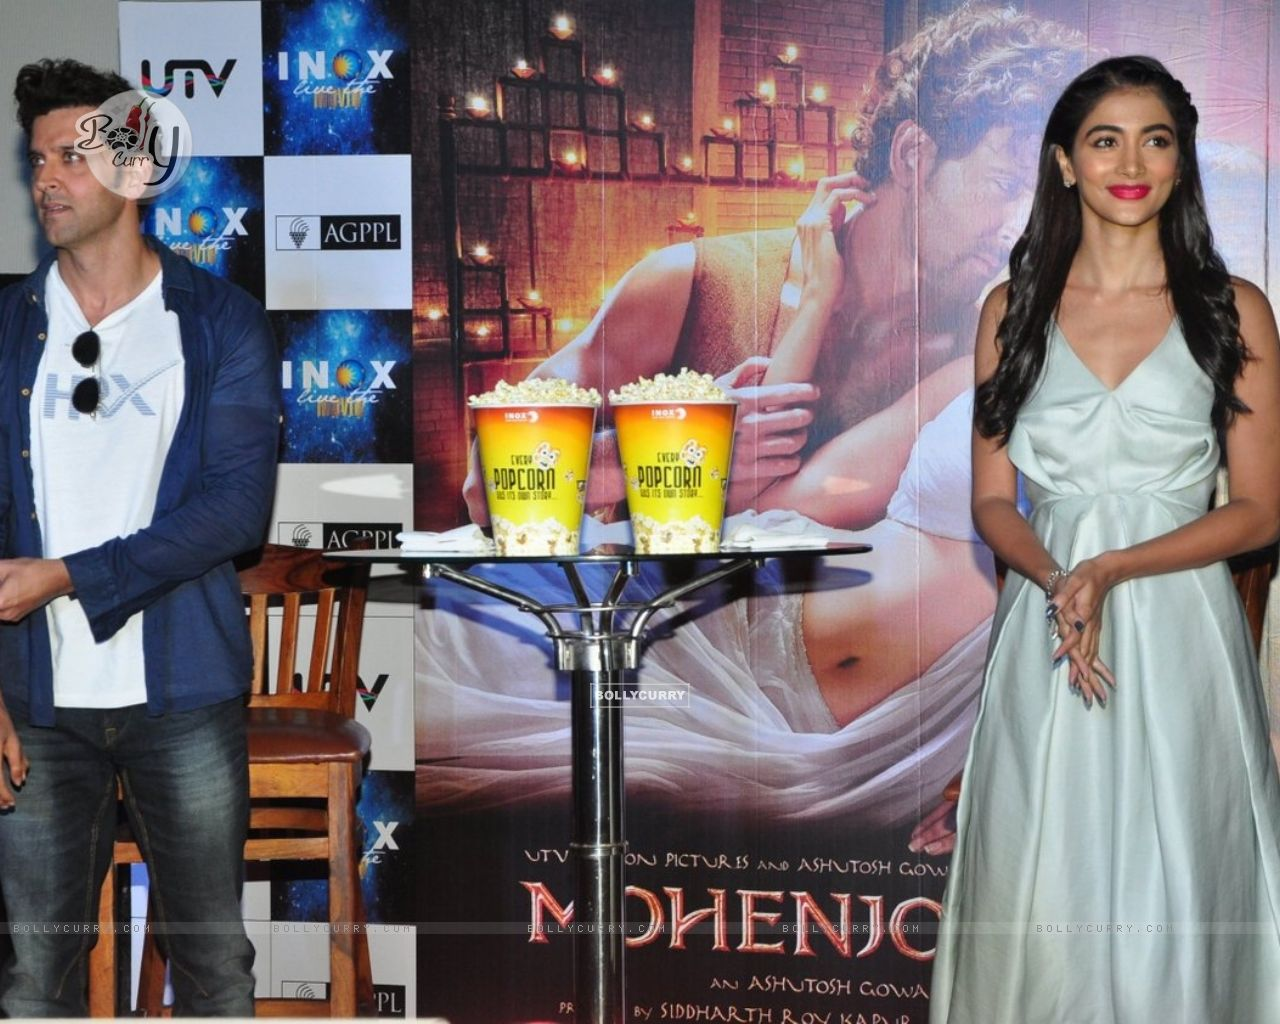 Hrithik Roshan and Pooja Hegde Promotes of Mohenjo daro at INOX (415792) size:1280x1024